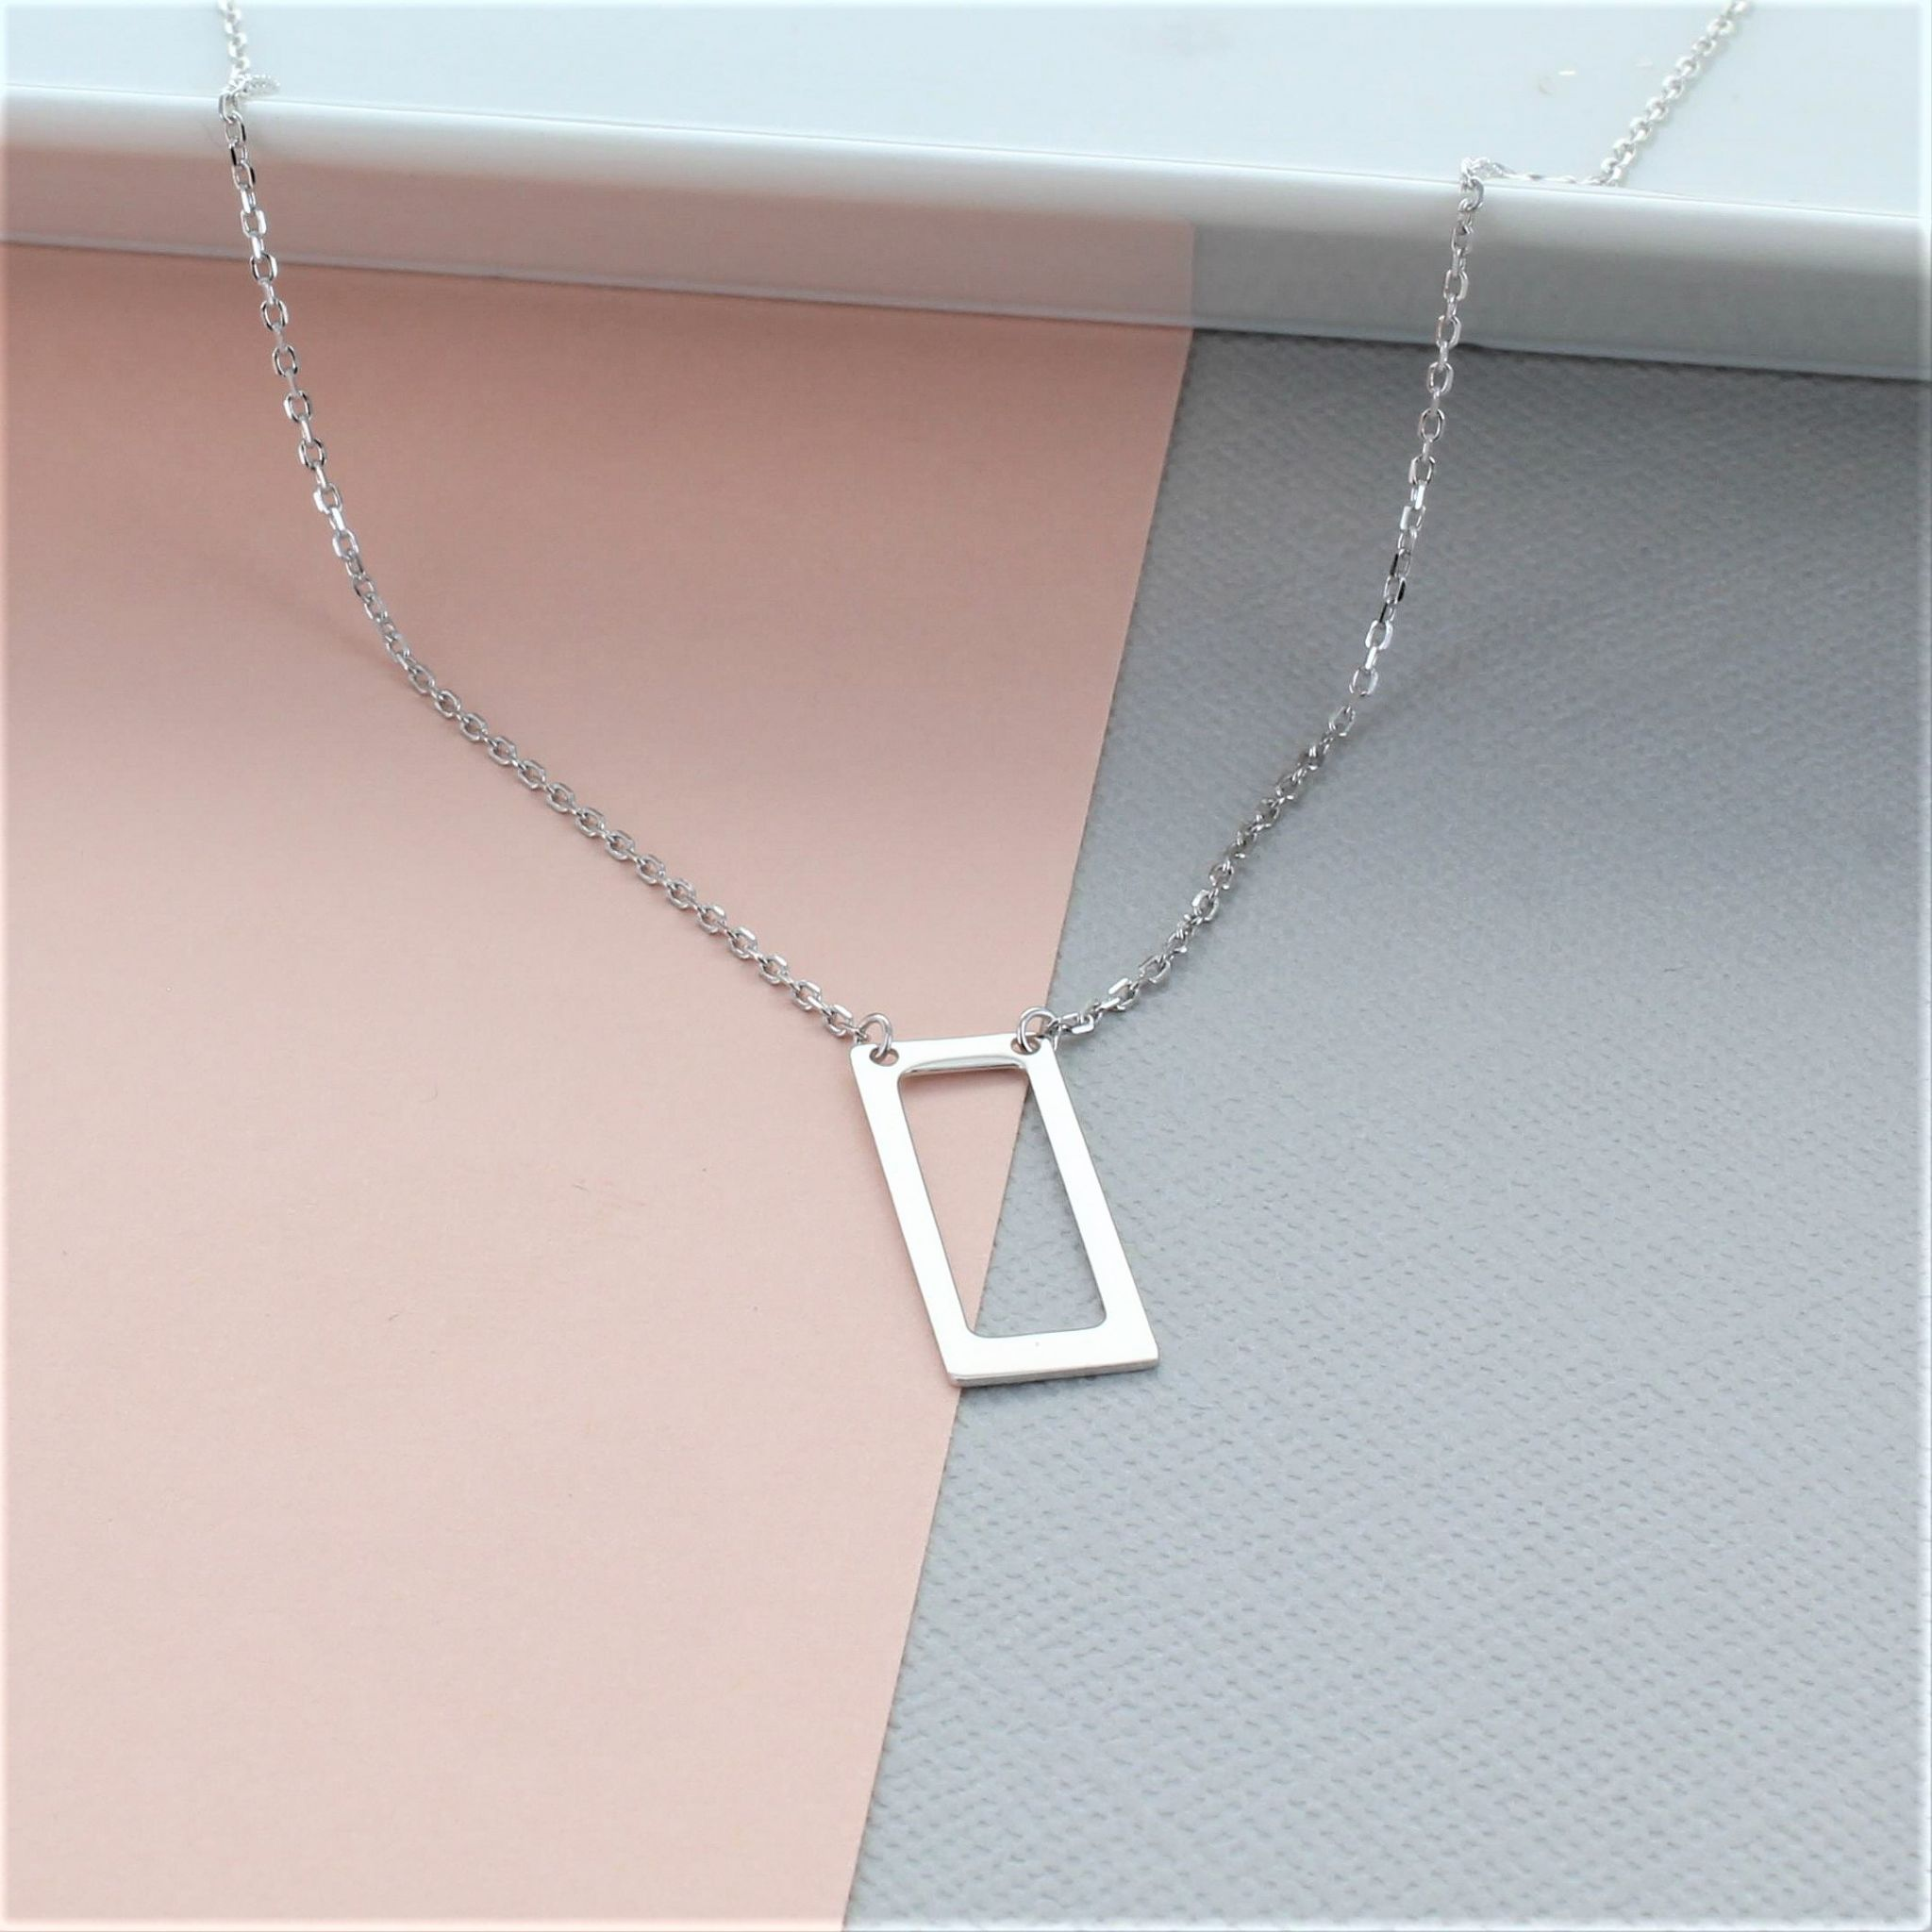 necklace rectangle products silver or stars open jewelry filled small throwing gold